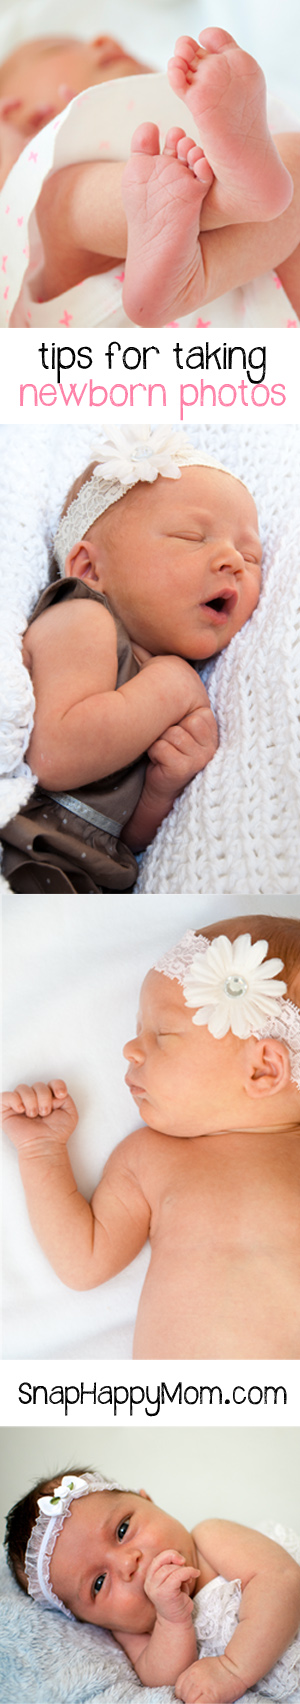 Tips for Taking Newborn Photos from SnapHappyMom.com